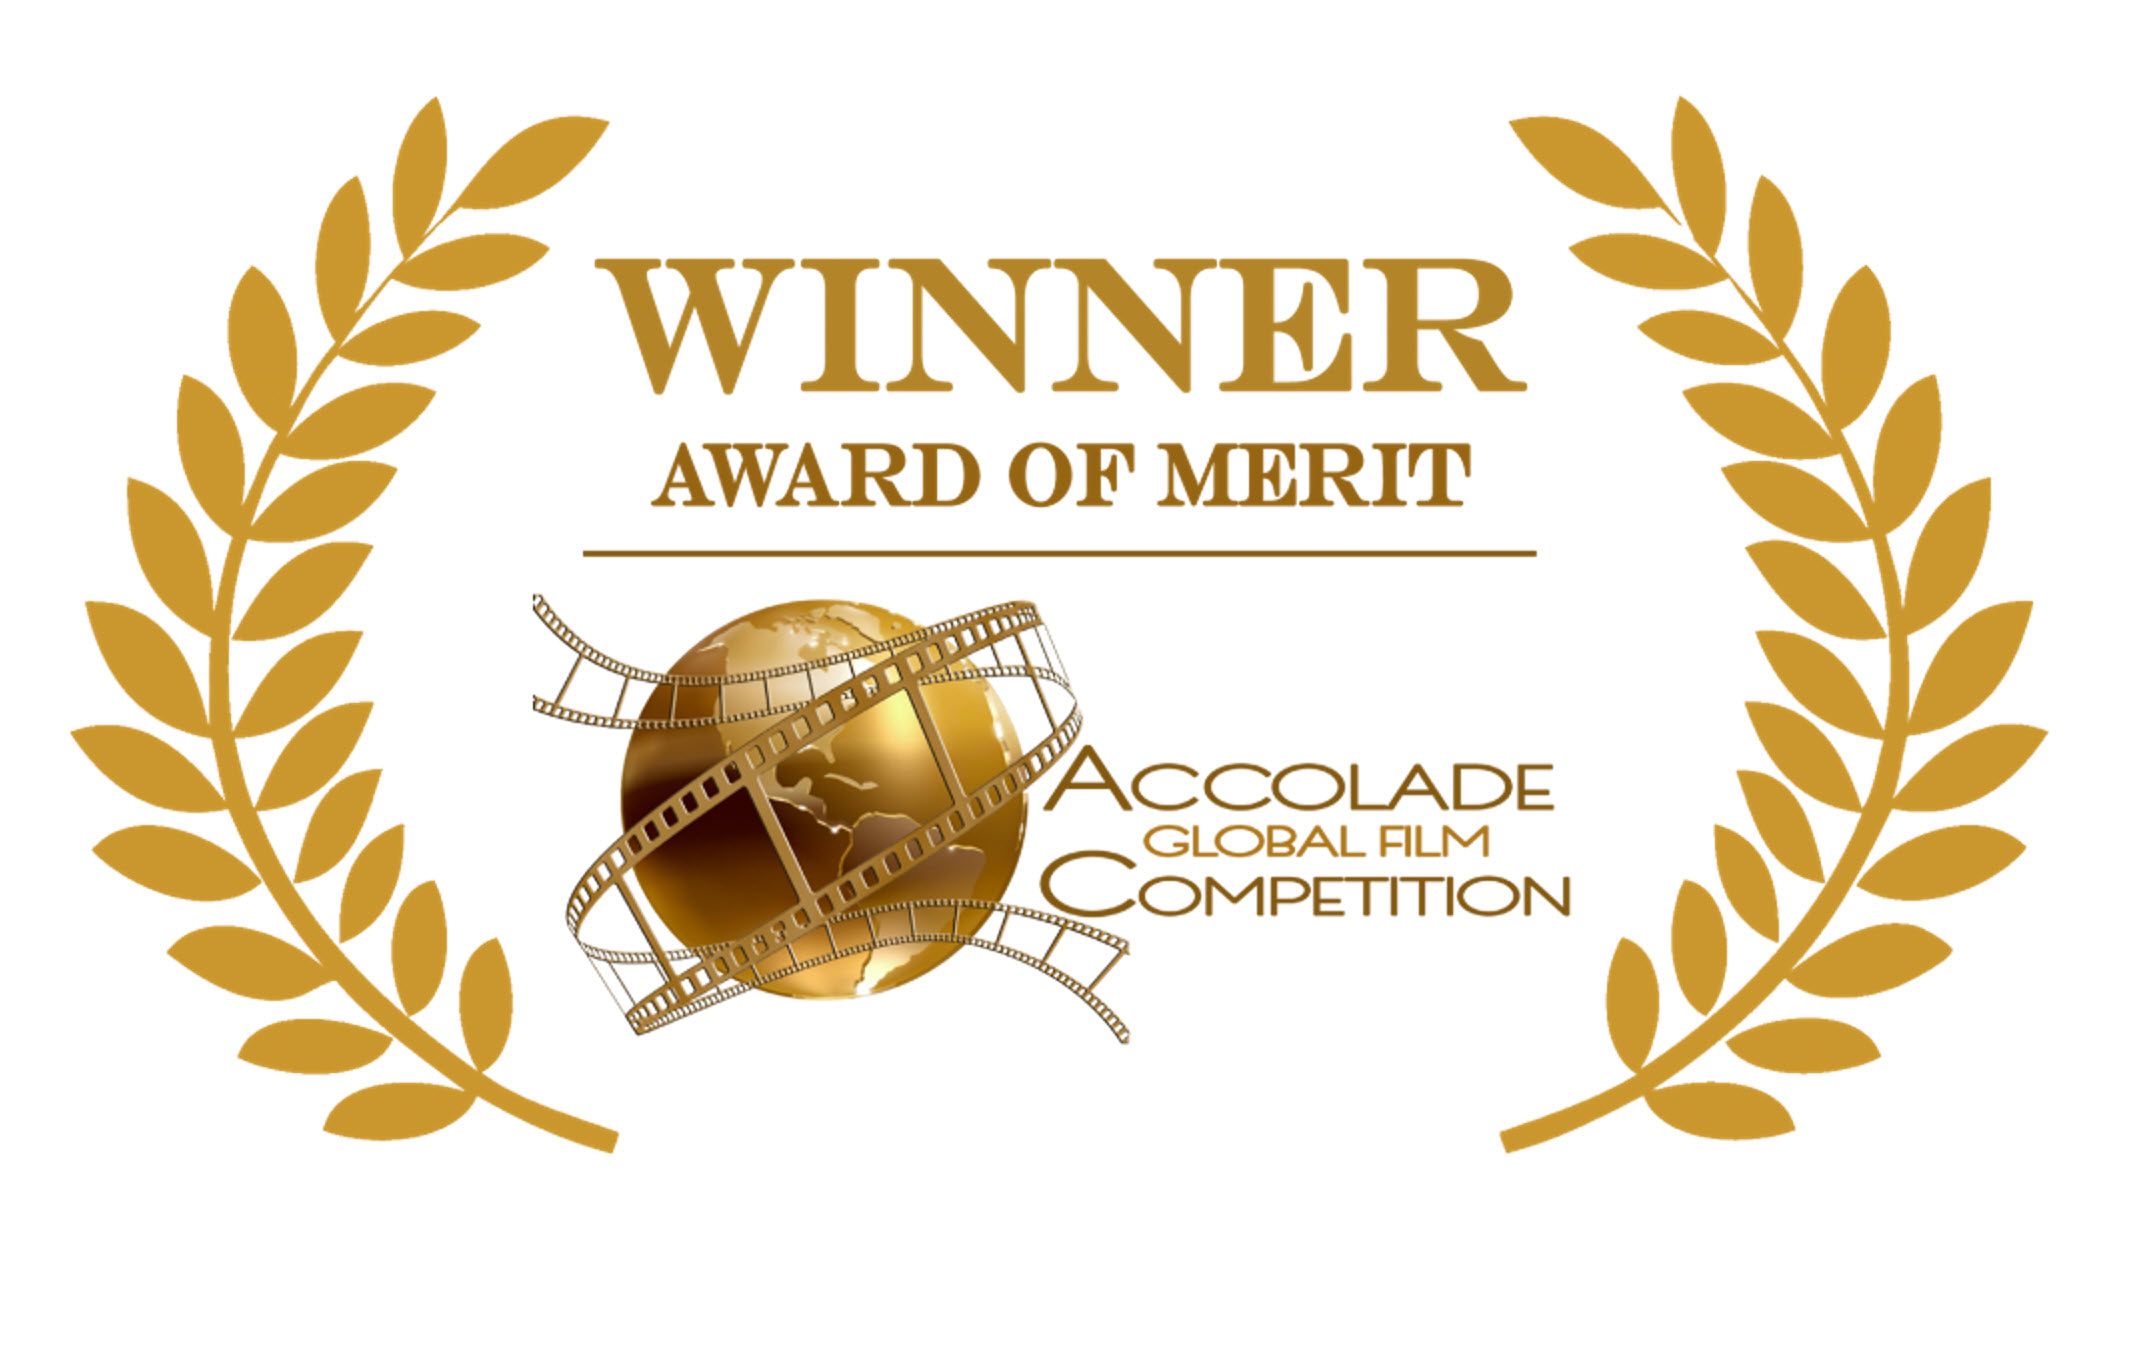 Producer & Director Ivan Gulas Wins Award in Accolade Global Film Competition